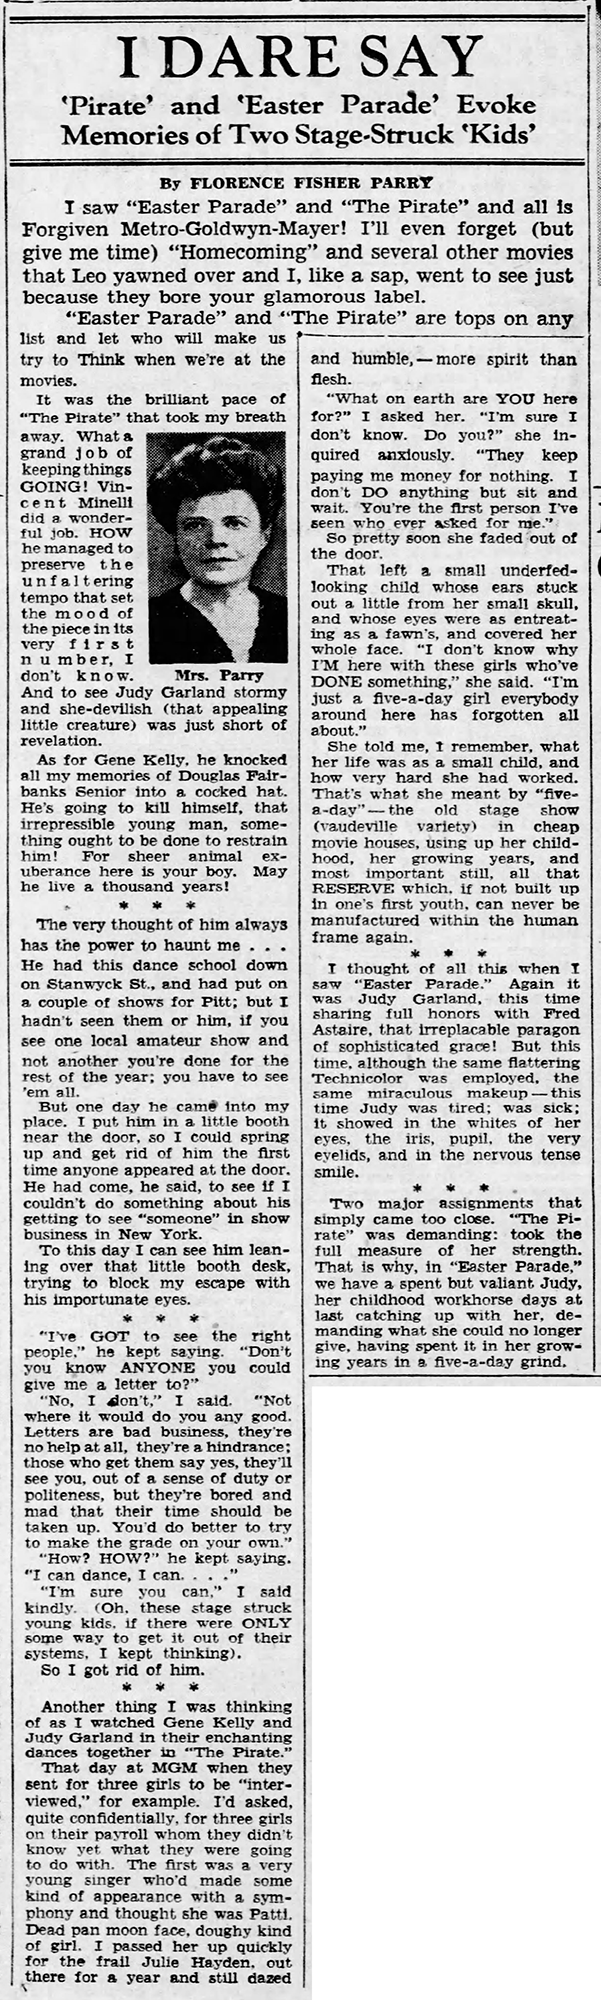 June-20,-1948-PIRATE-AND-EP-The_Pittsburgh_Press